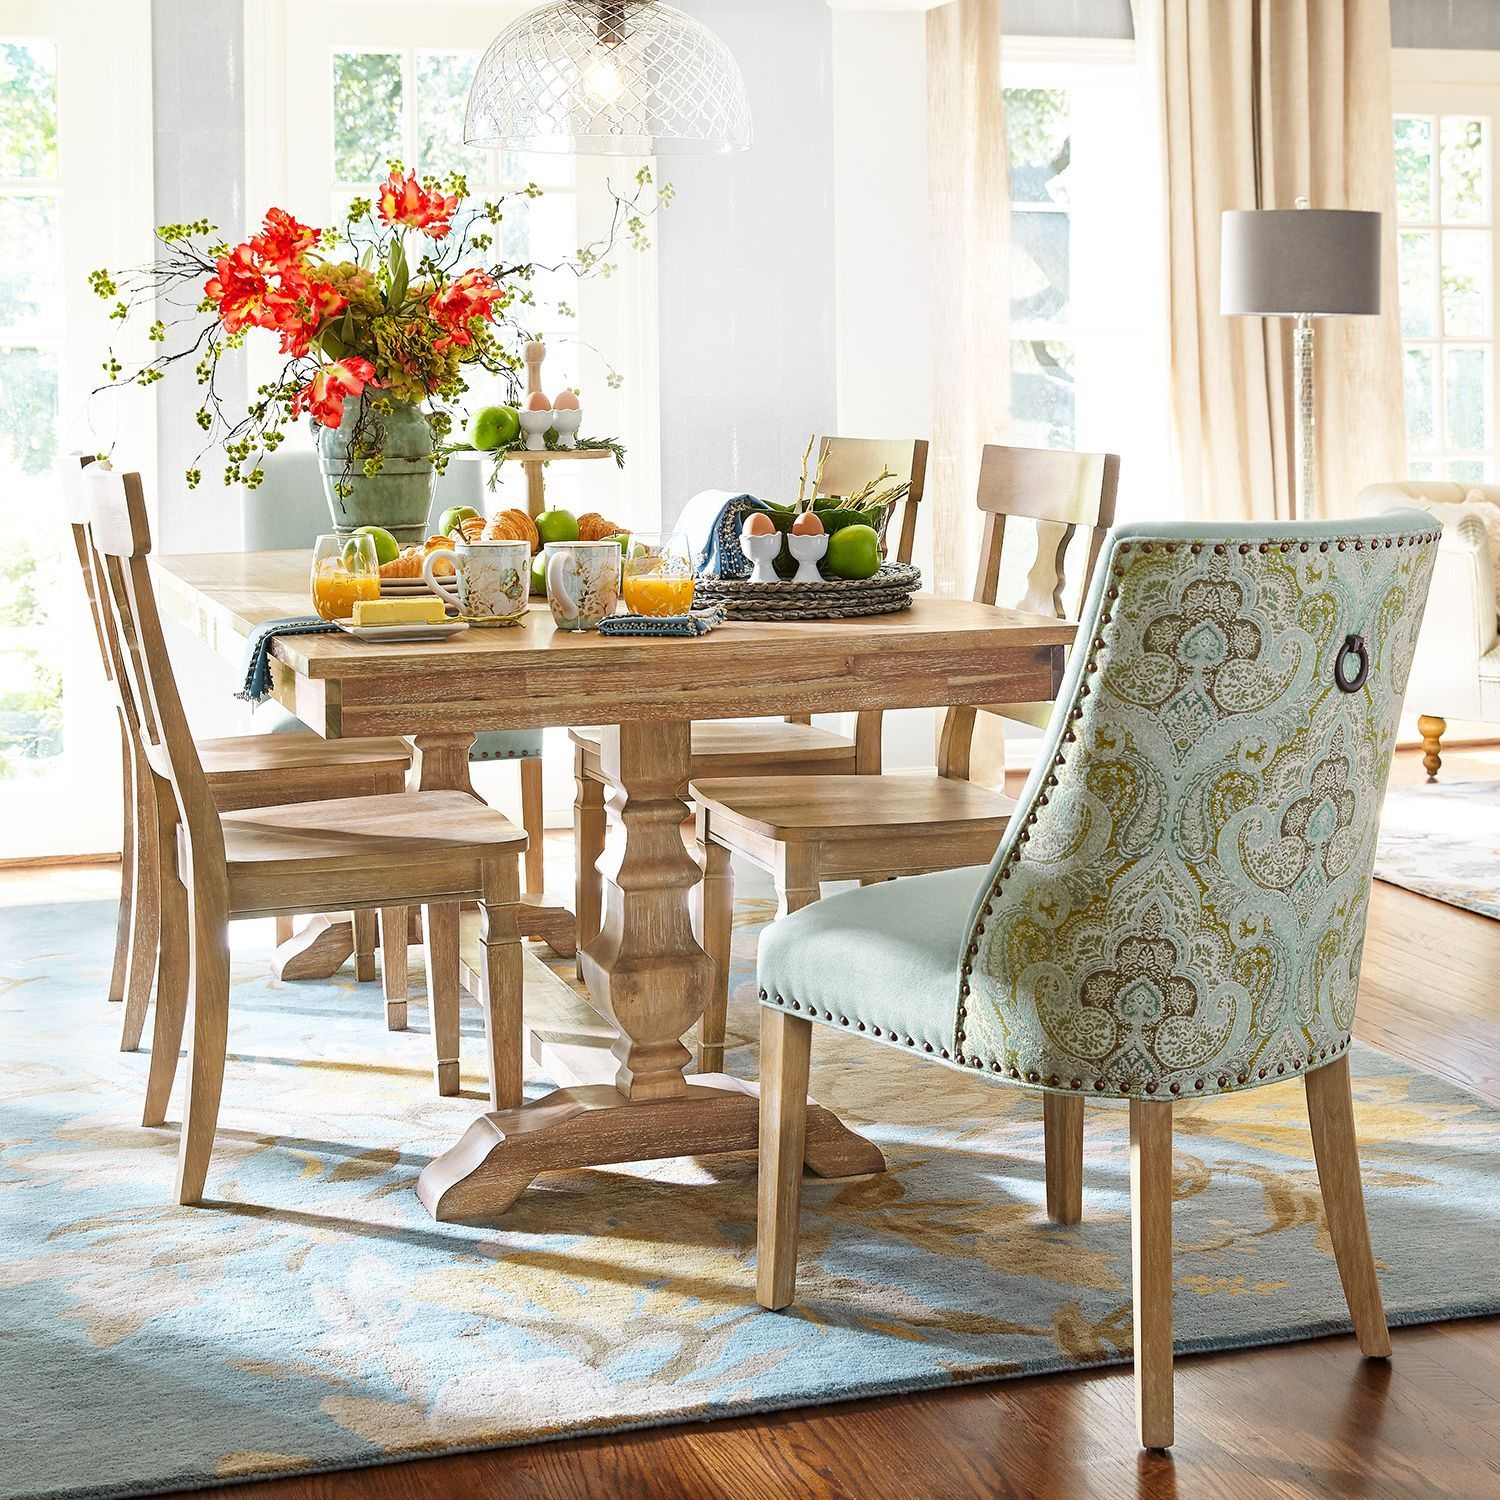 Aqua Medallion Dining Chair With Natural Whitewash Wood Comedor